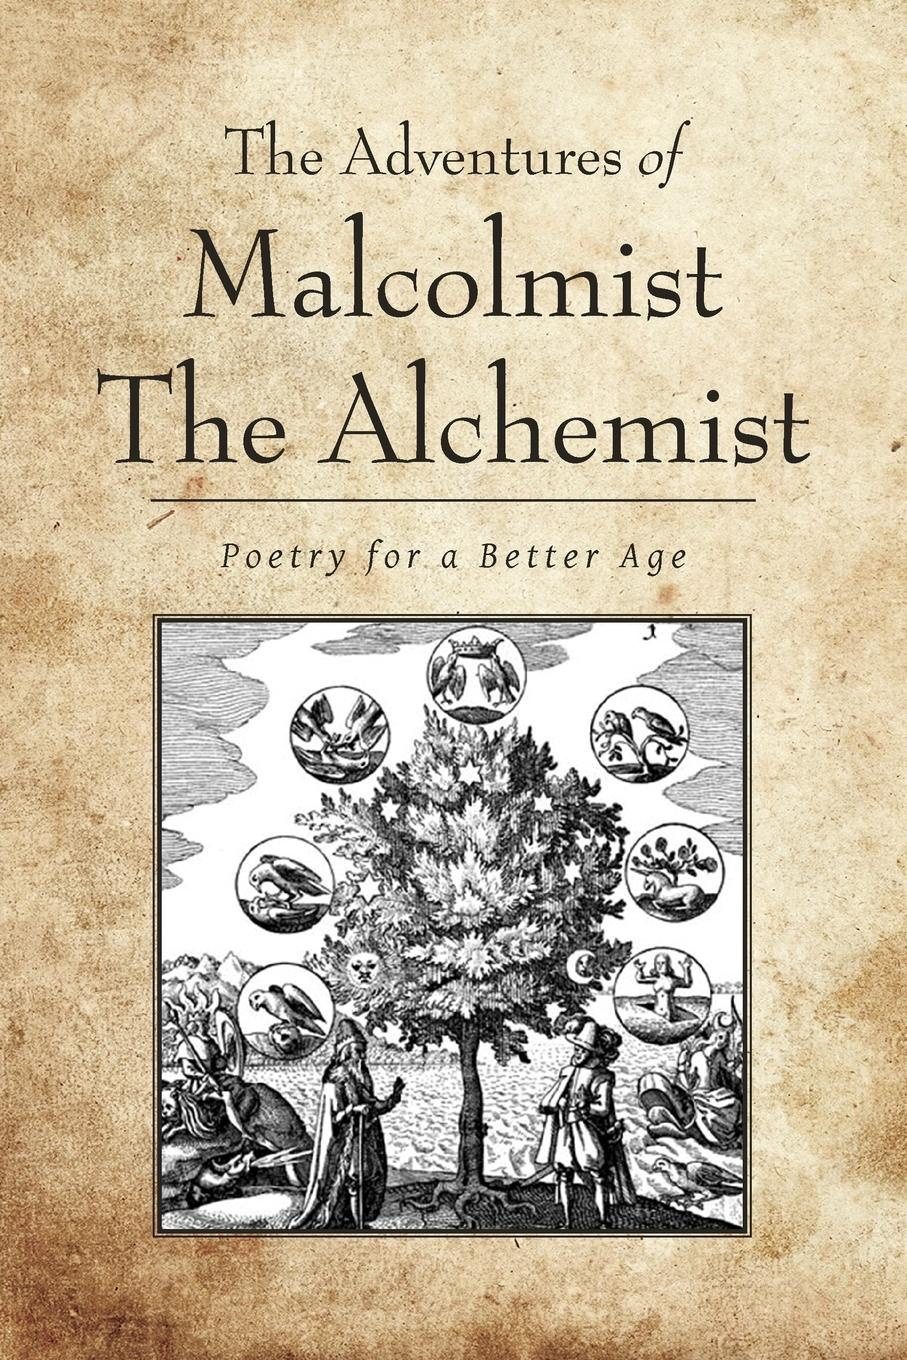 цены на Malcolmist The Alchemist The Adventures of Malcolmist The Alchemist